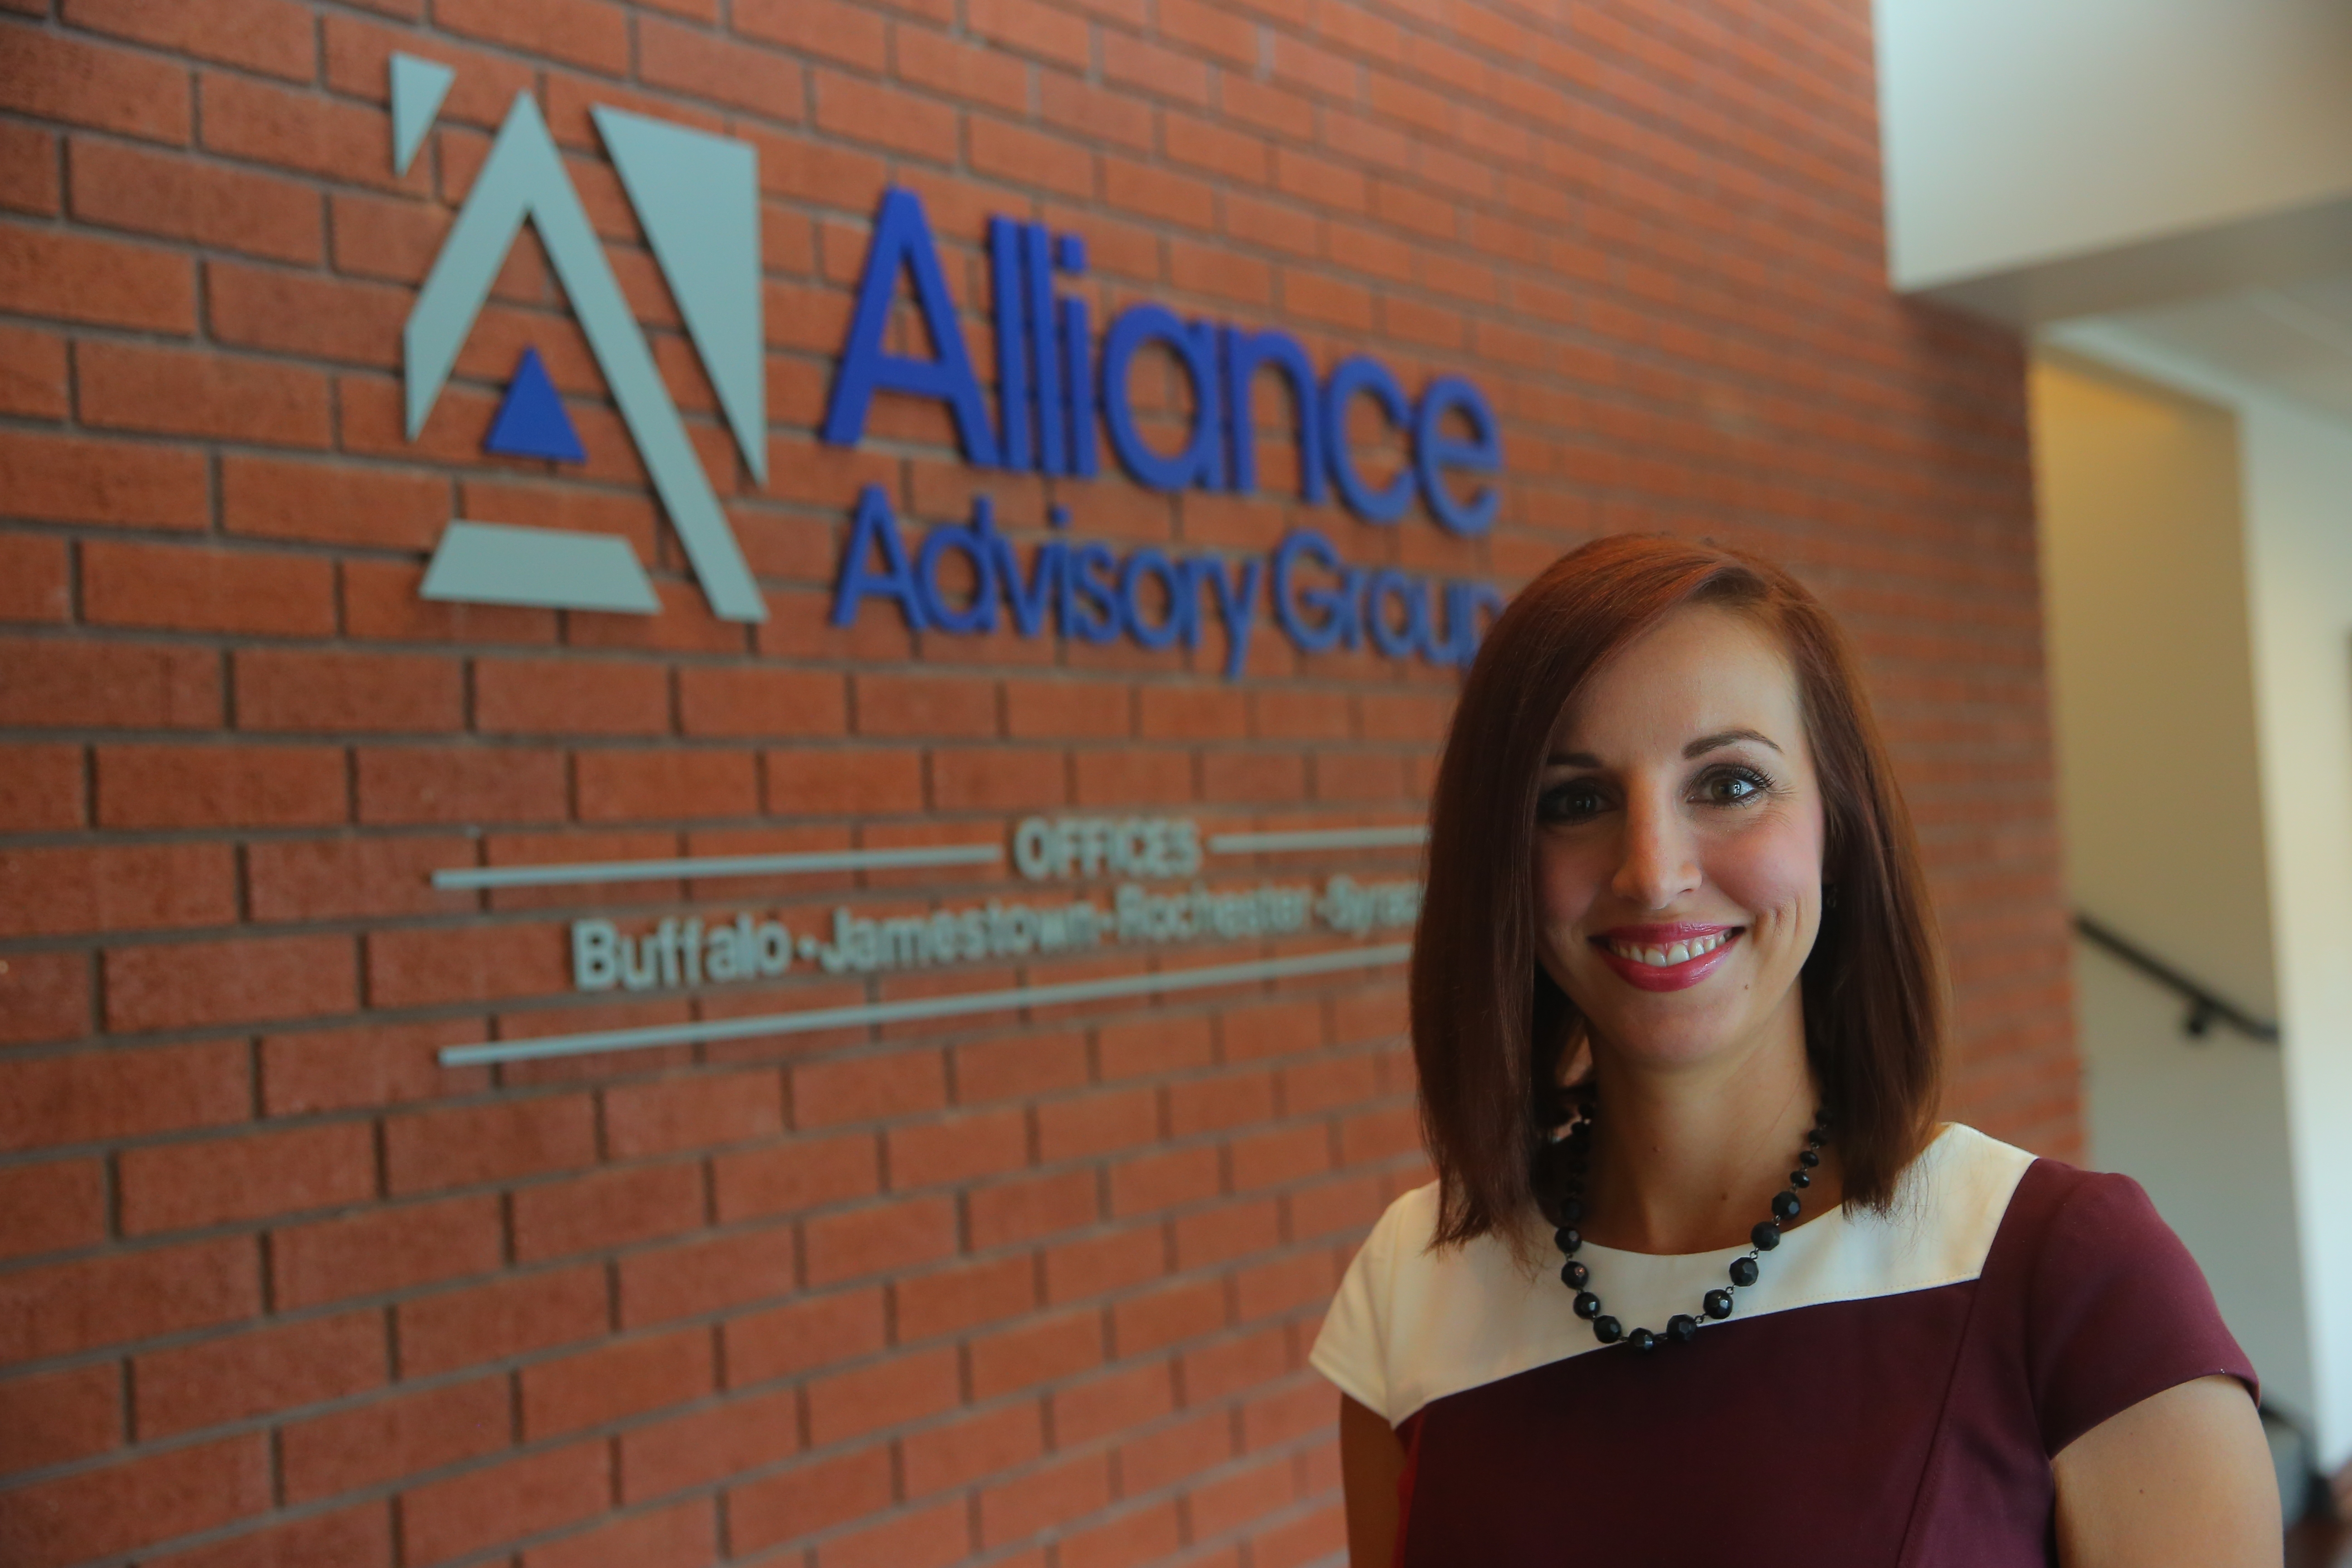 """I save people's lives financially,"" said Angela Szafran, of her work as a financial specialist at Alliance Advisory Group."